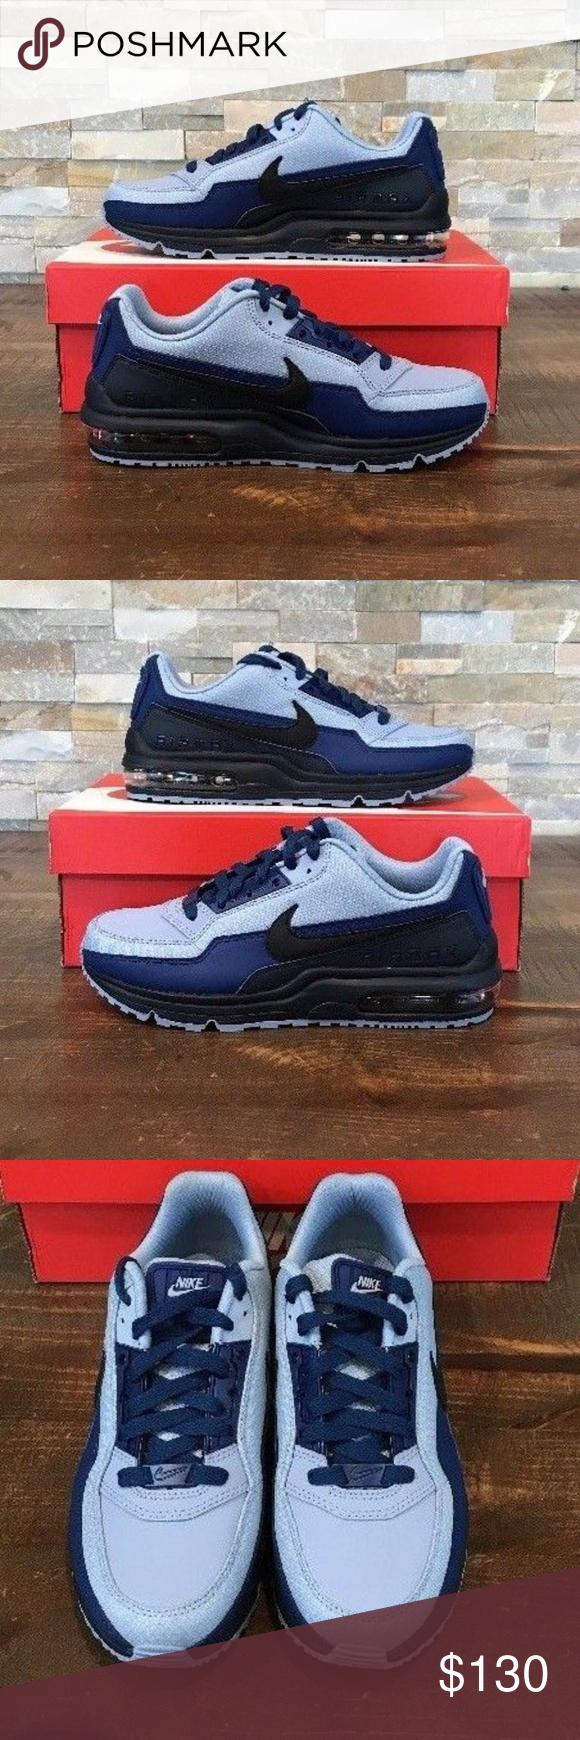 best sneakers 2d490 94243 Nike Air Max LTD 3 Prem Limited Edition Running NEW Nike Air Max LTD 3 Prem Limited  Edition Running Shoes - 695484-404 New With Box Shipped Double Boxed ...